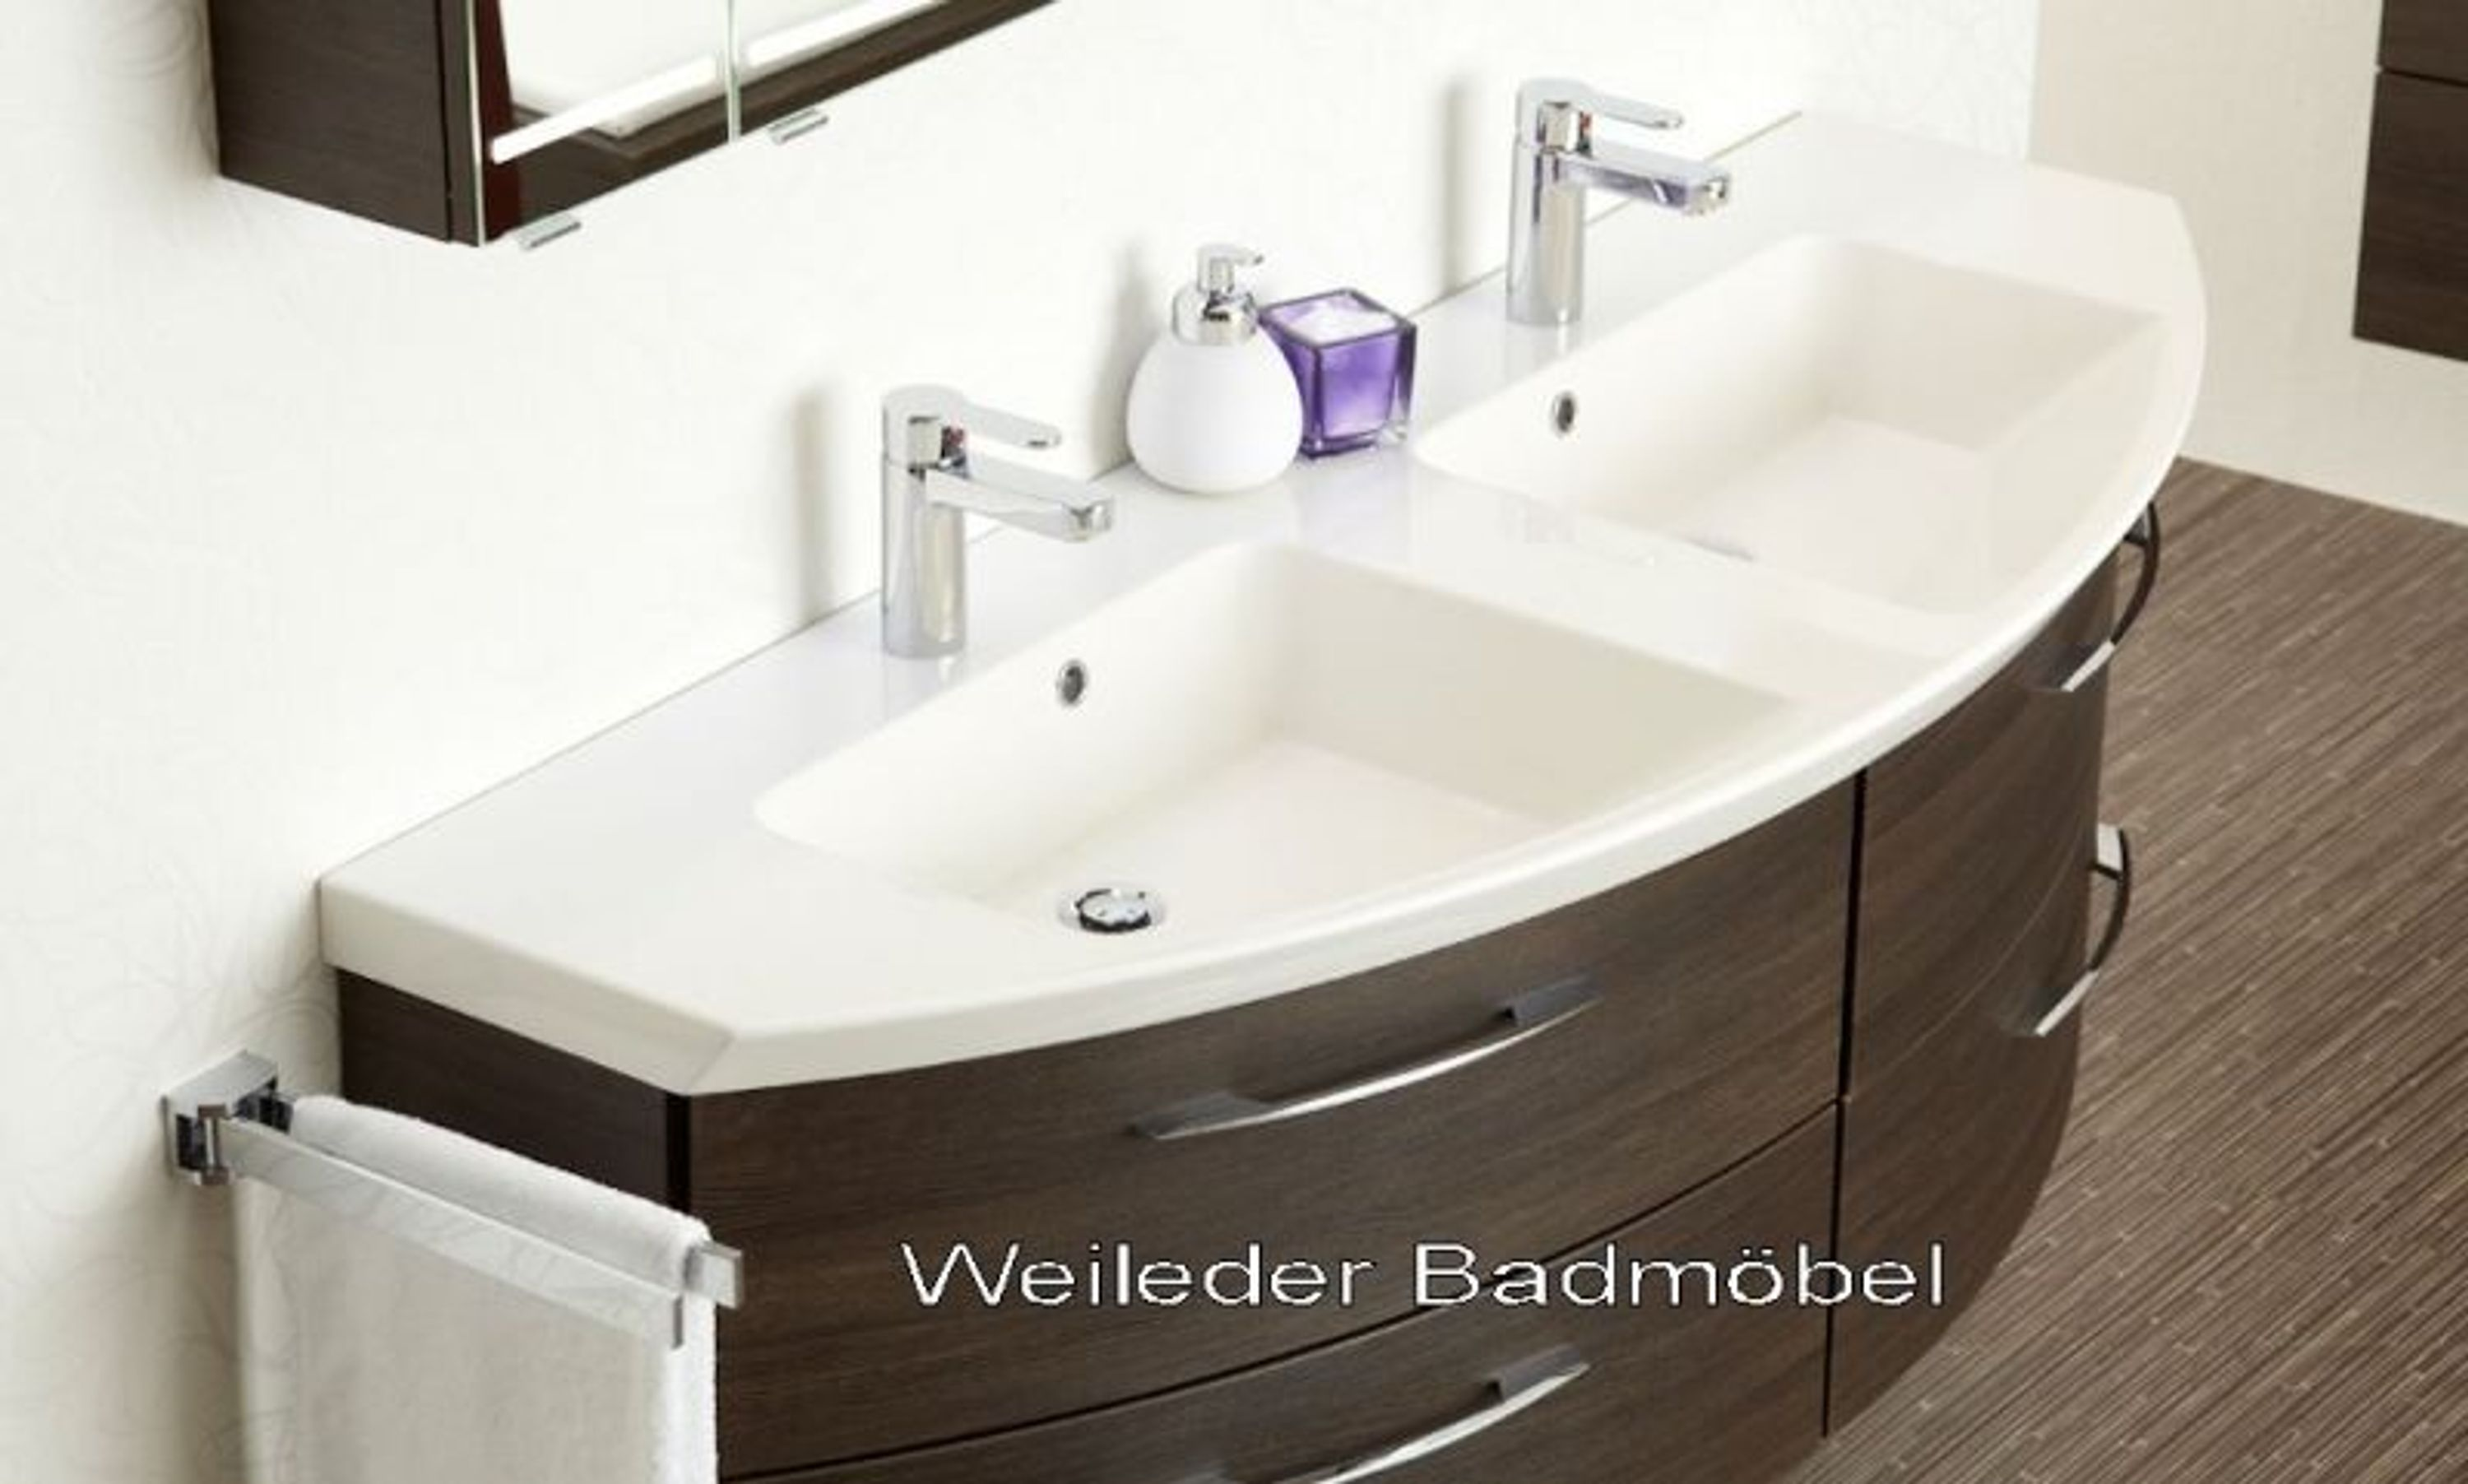 pelipal cassca bad set waschtisch 120 140 cm mit spiegelschrank 3 teilig 6 11 kaufen bei. Black Bedroom Furniture Sets. Home Design Ideas